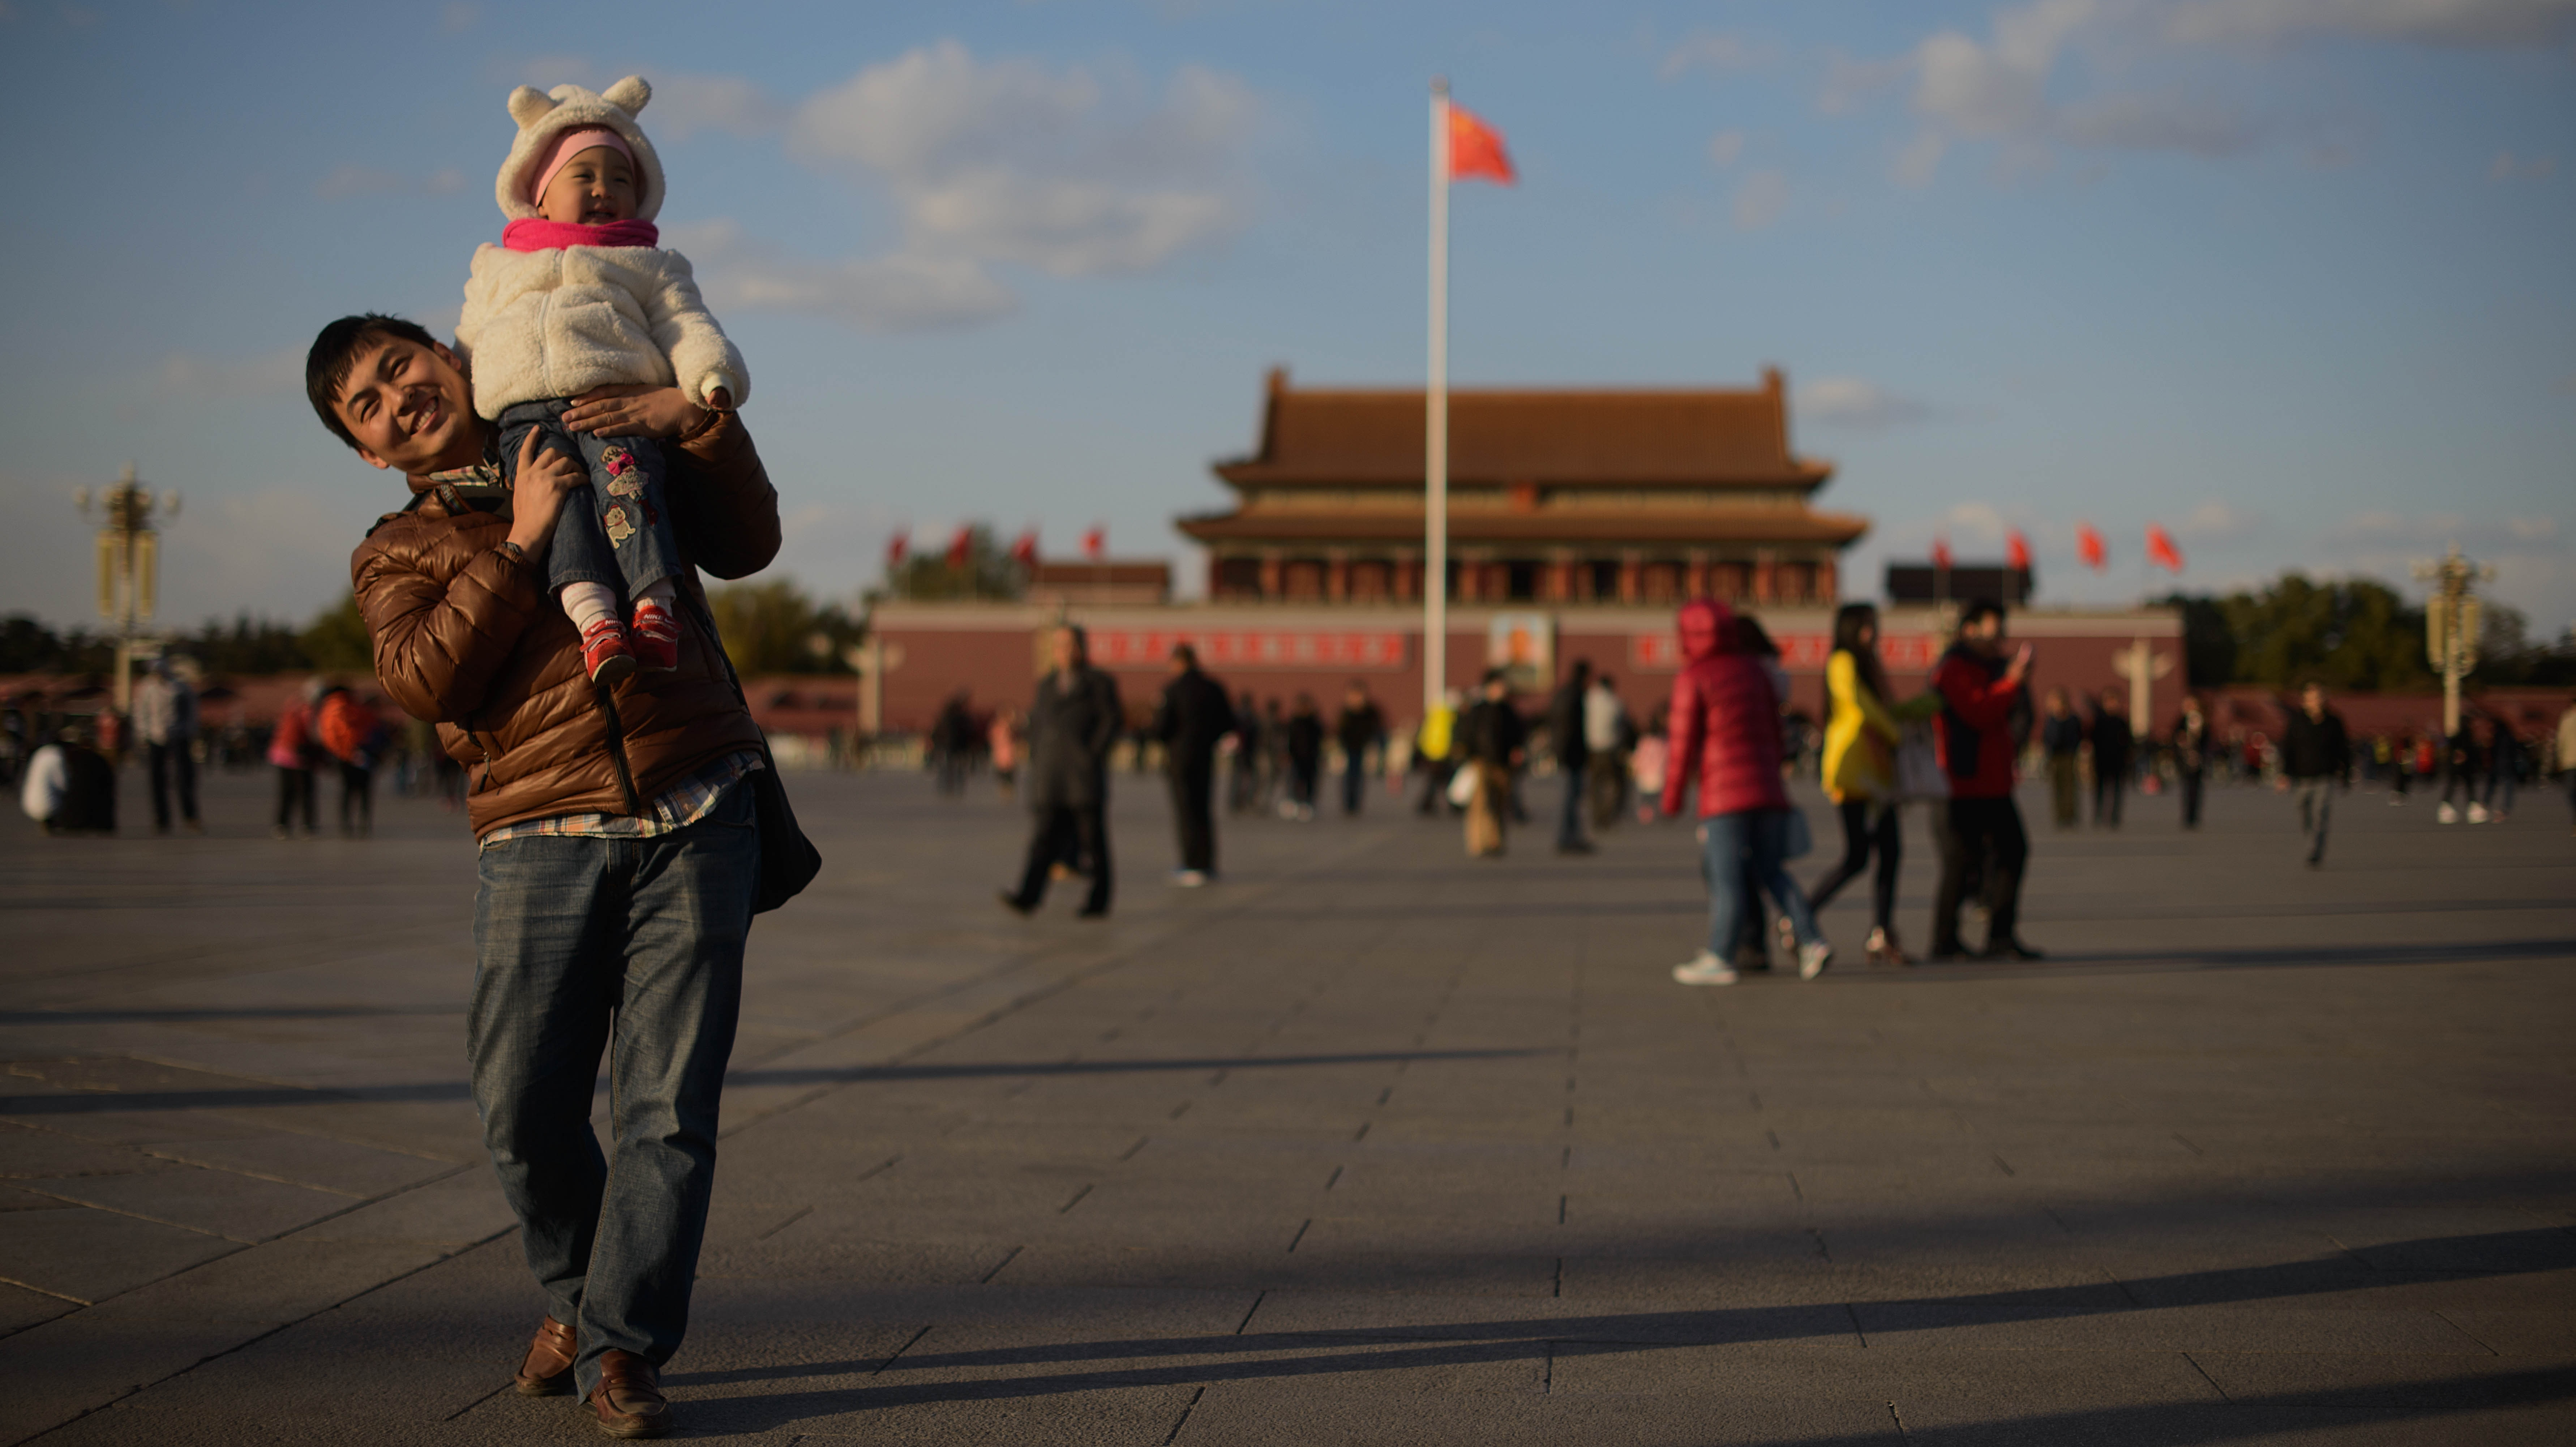 Chinese Welcome Easing Of One-Child Policy, But Can They Afford It?